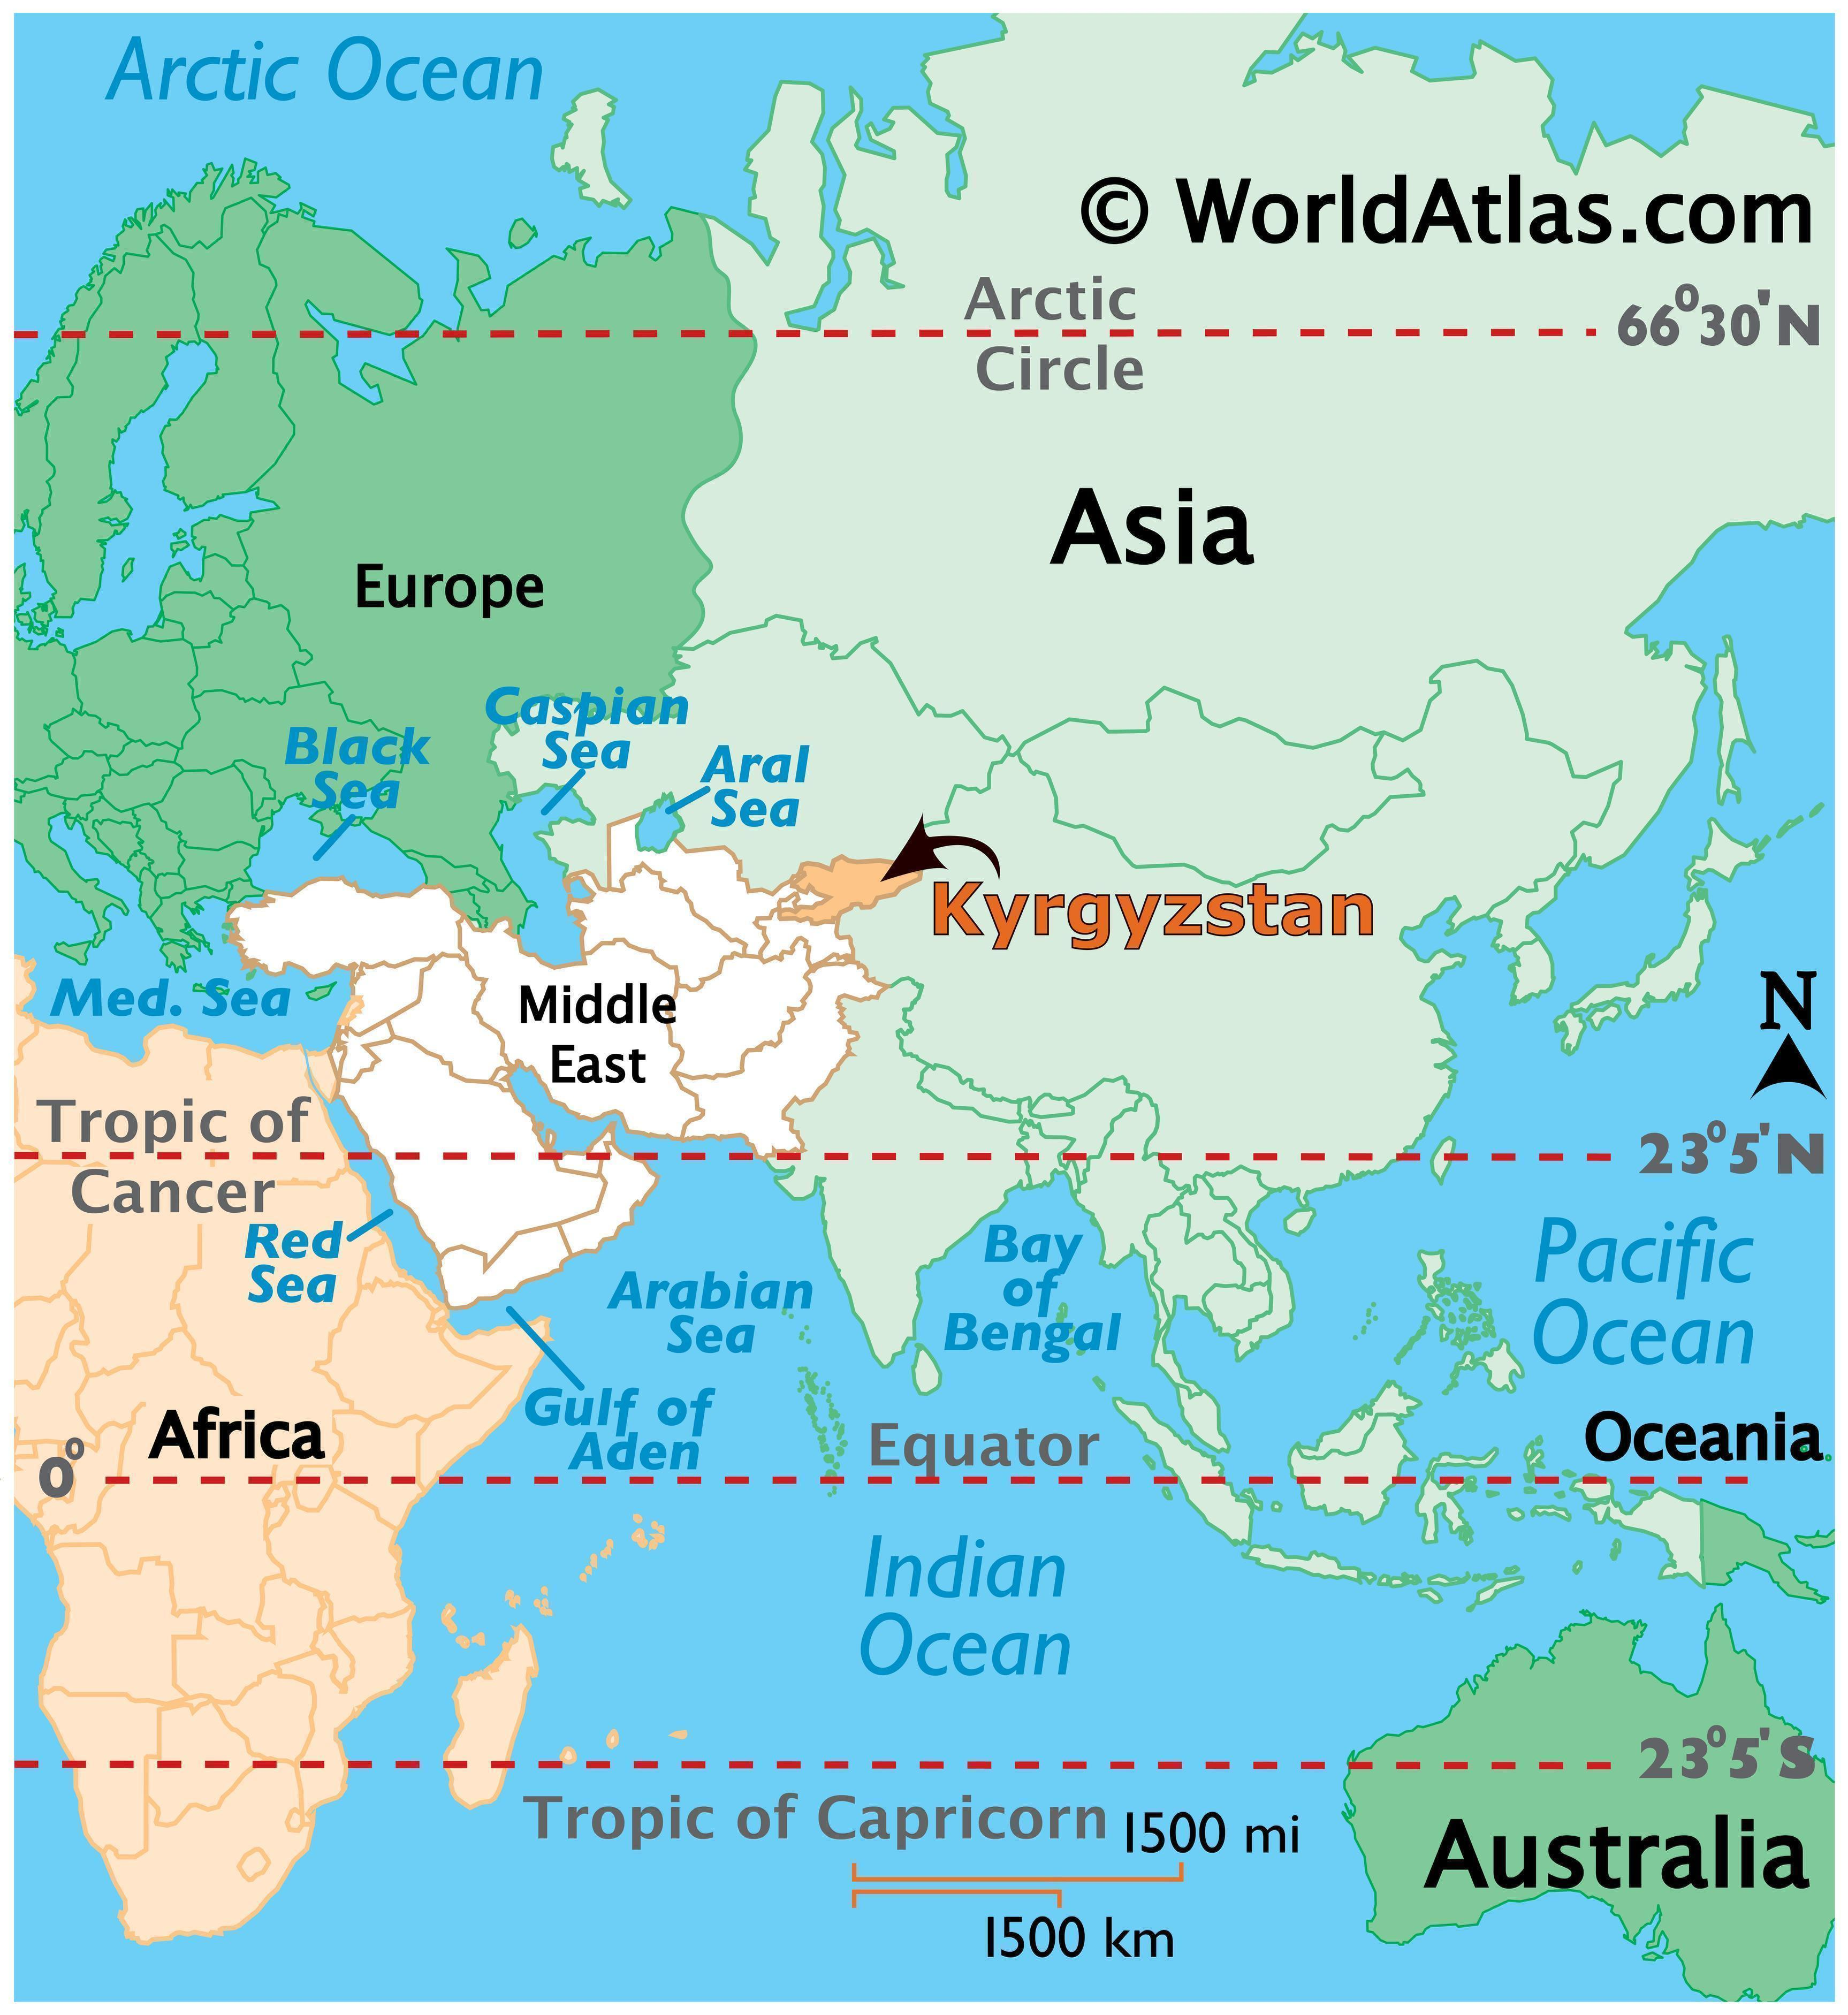 Where is Kyrgyzstan?